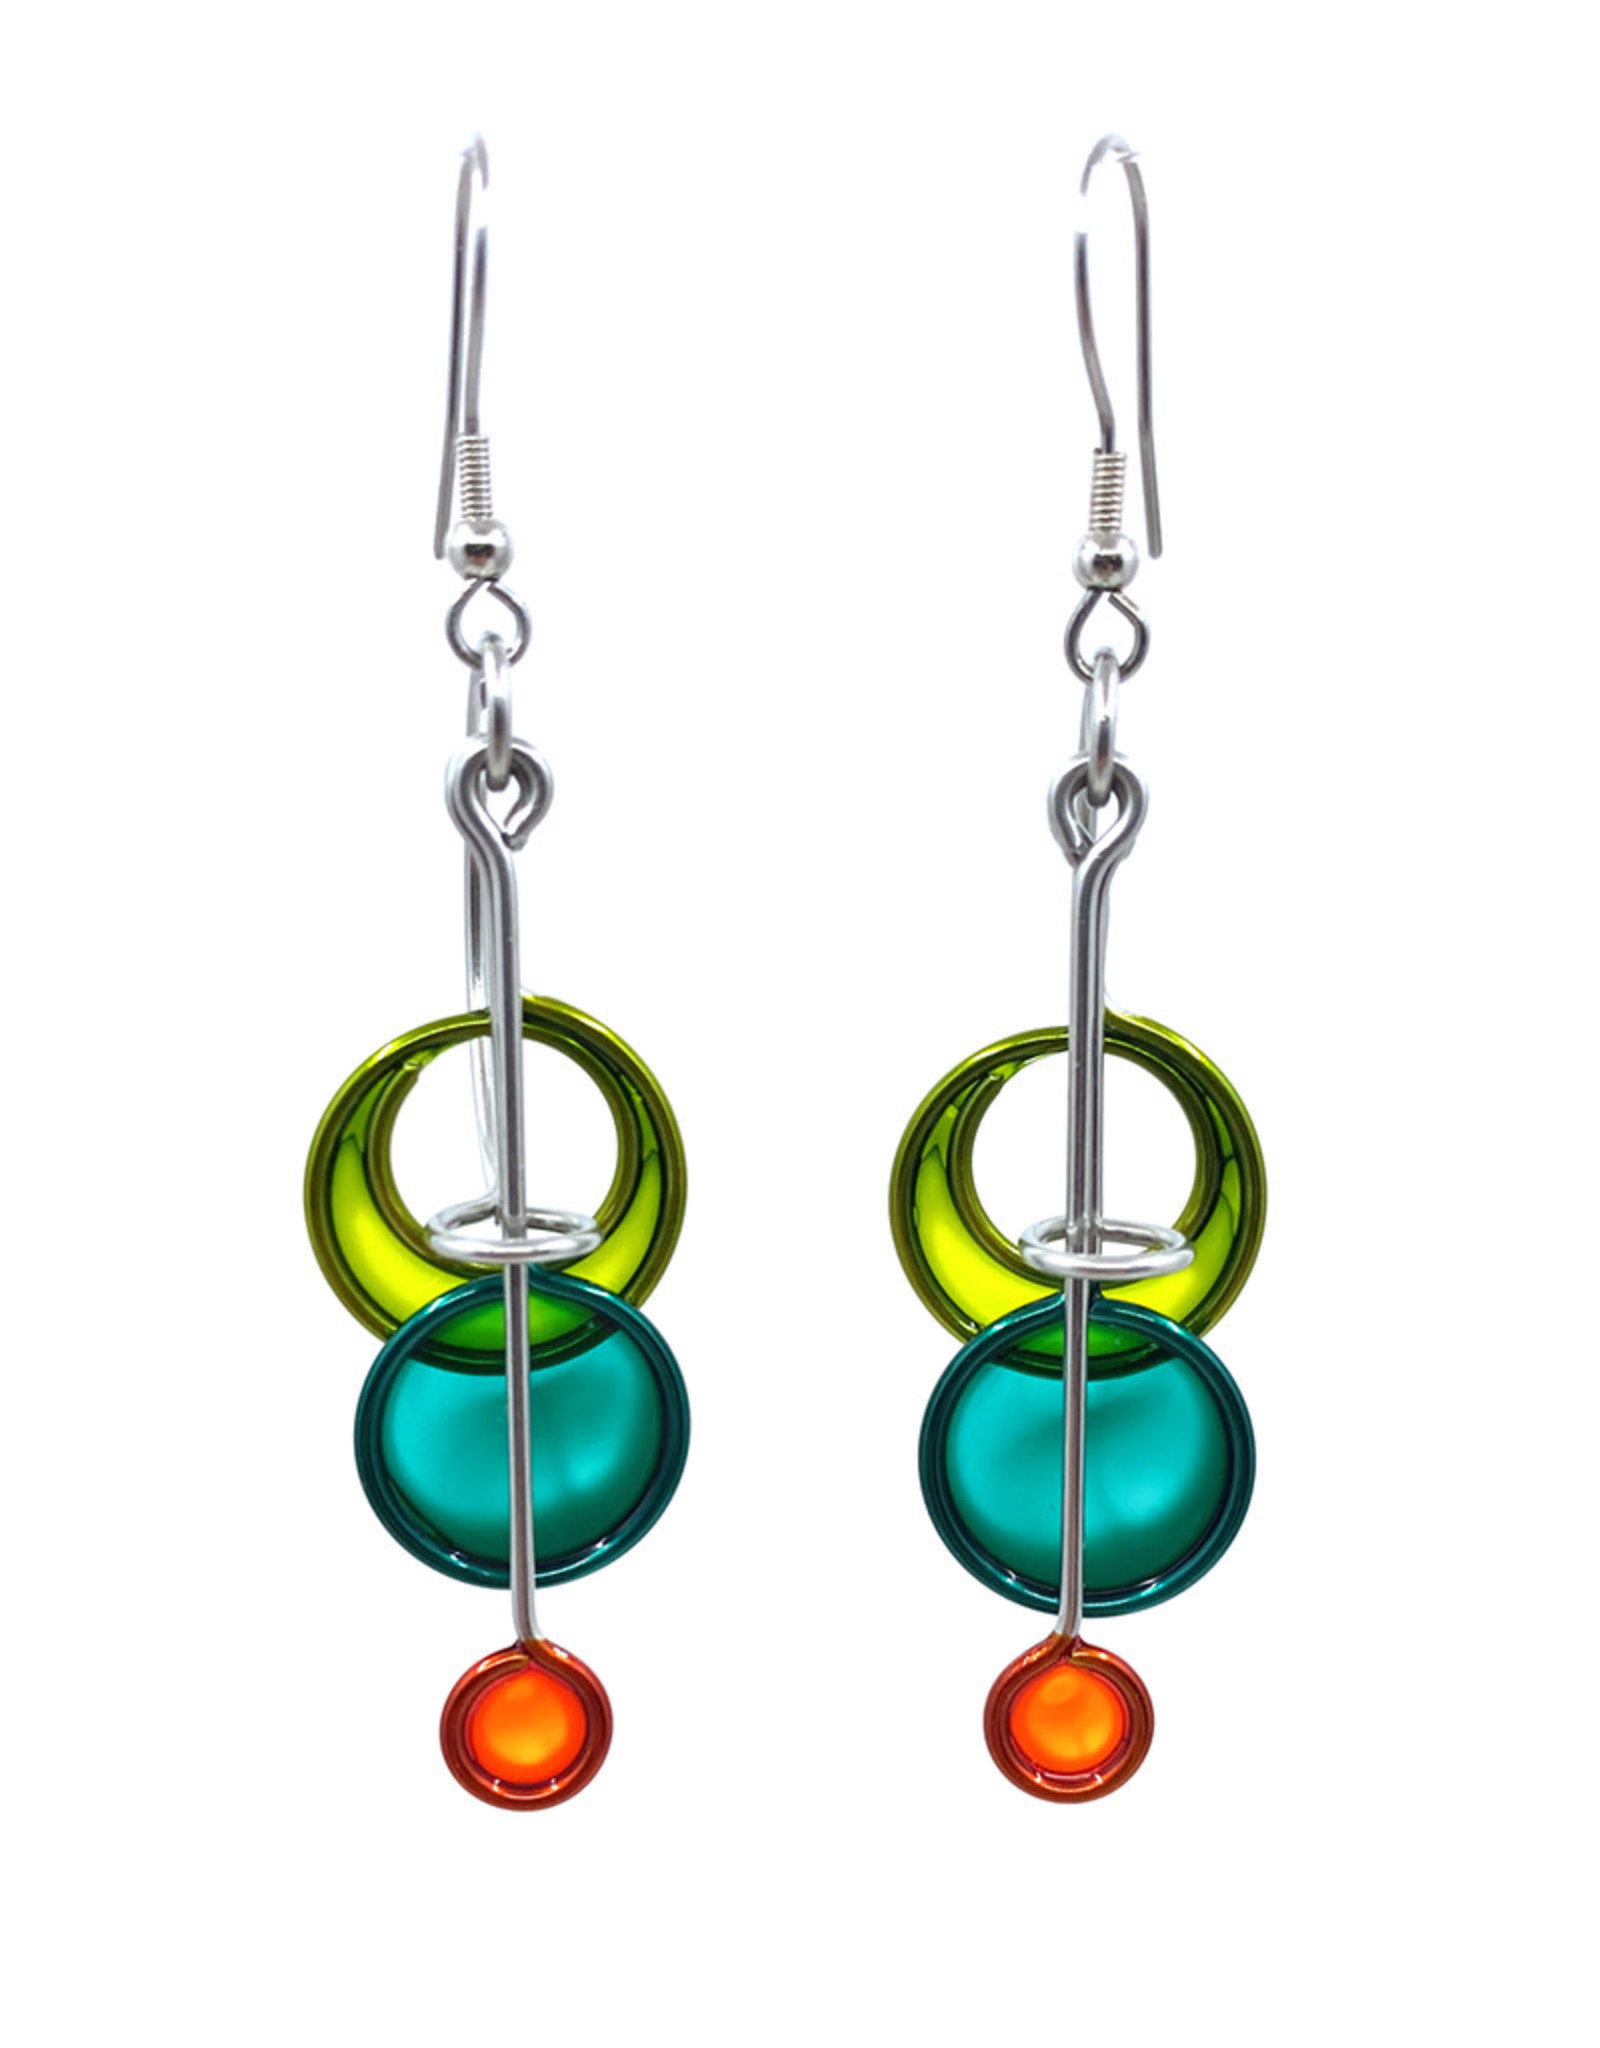 CHRISTOPHER ROYAL TRIPTYCH EARRINGS